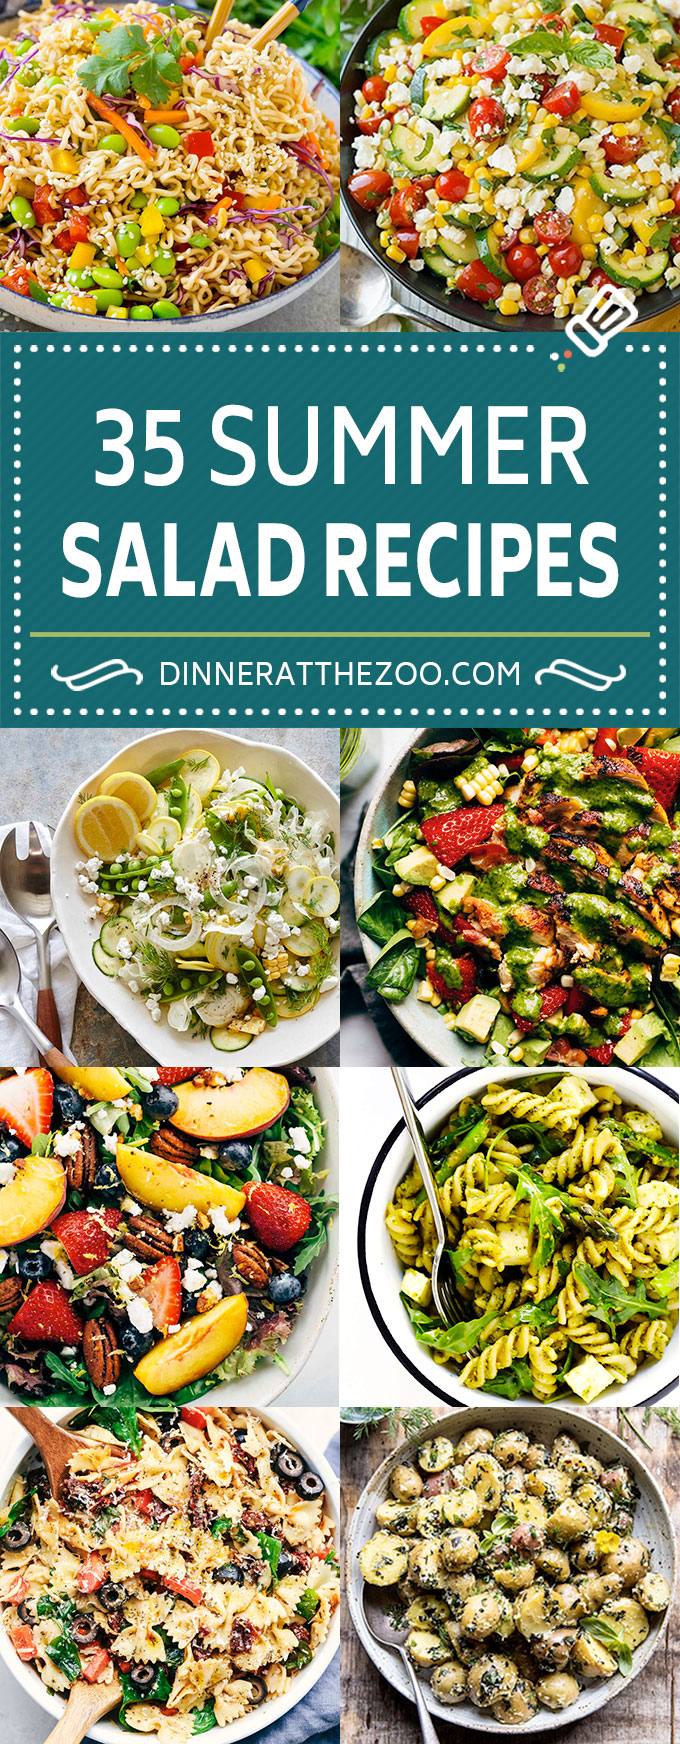 35 Summer Salad Recipes | Pasta Salad Recipes | Vegetable Salad Recipes | Potato Salad Recipes #salads #summer #recipe #dinneratthezoo